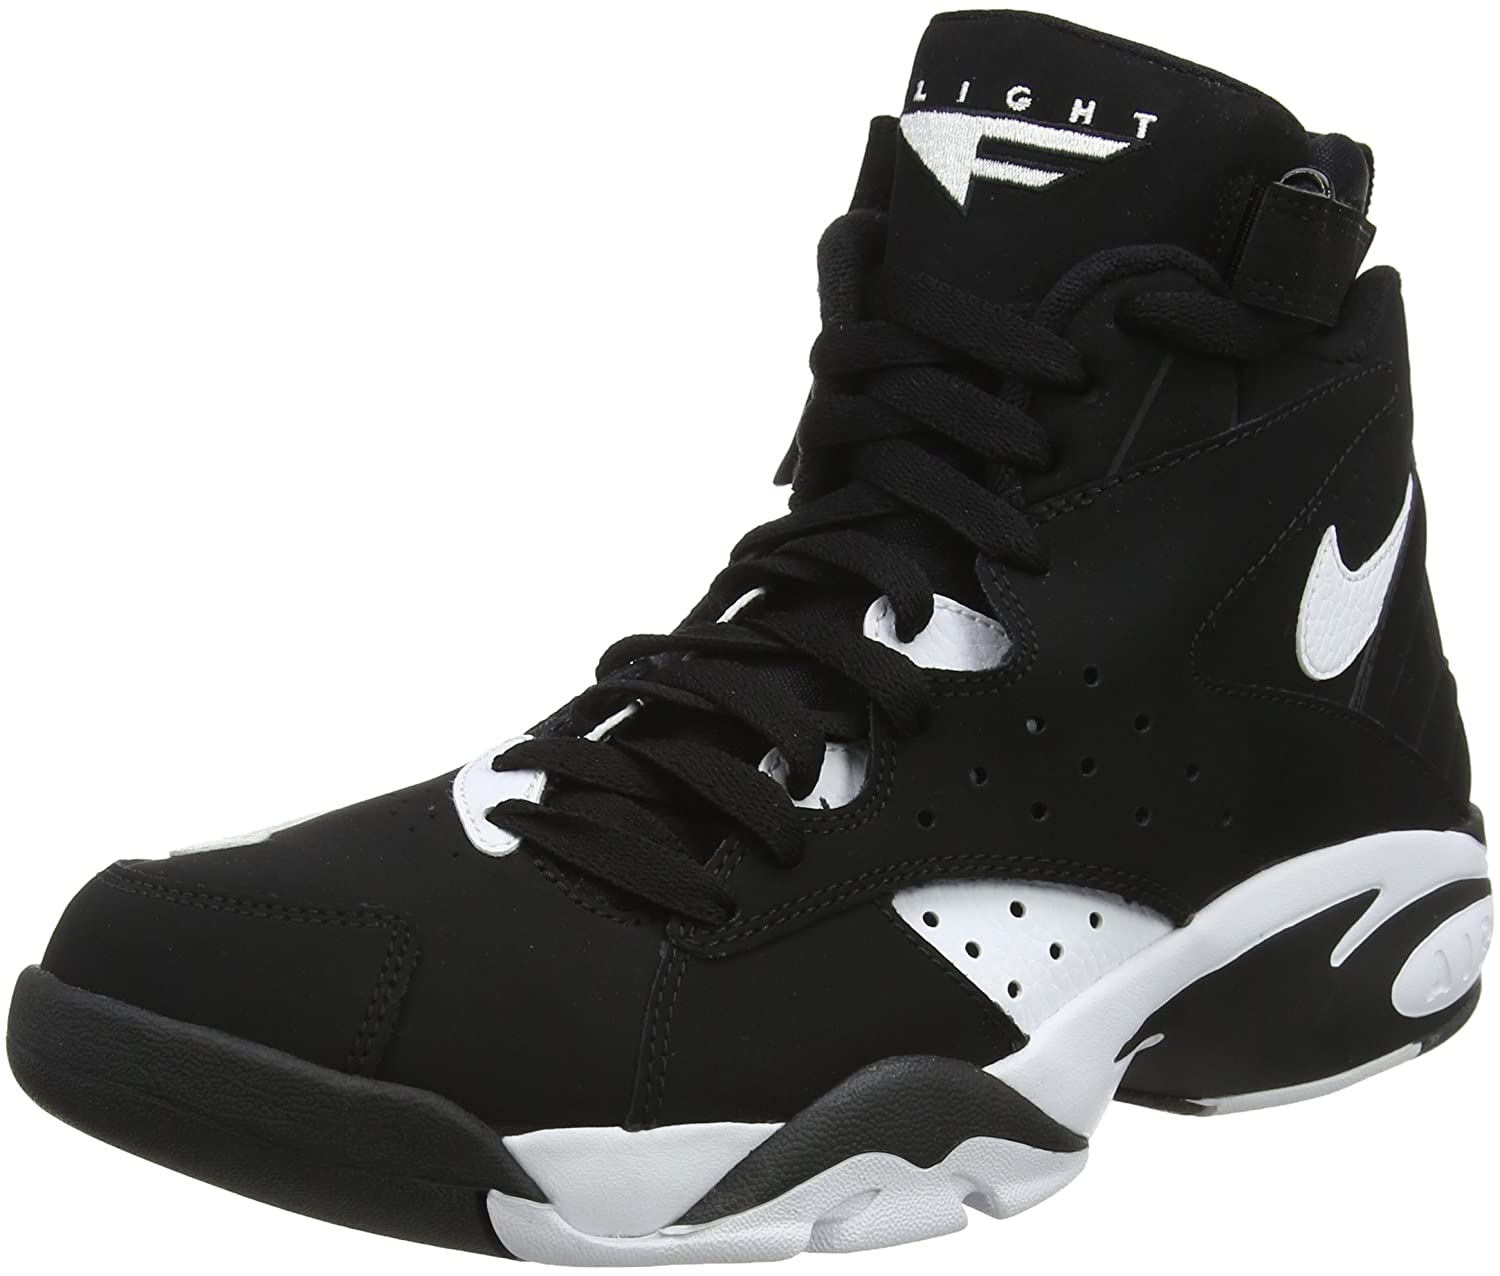 new style bcef8 4f5f1 Top1  NIKE Air Maestro II Limited Men  s Basketball Shoes Black White  ah8511-001